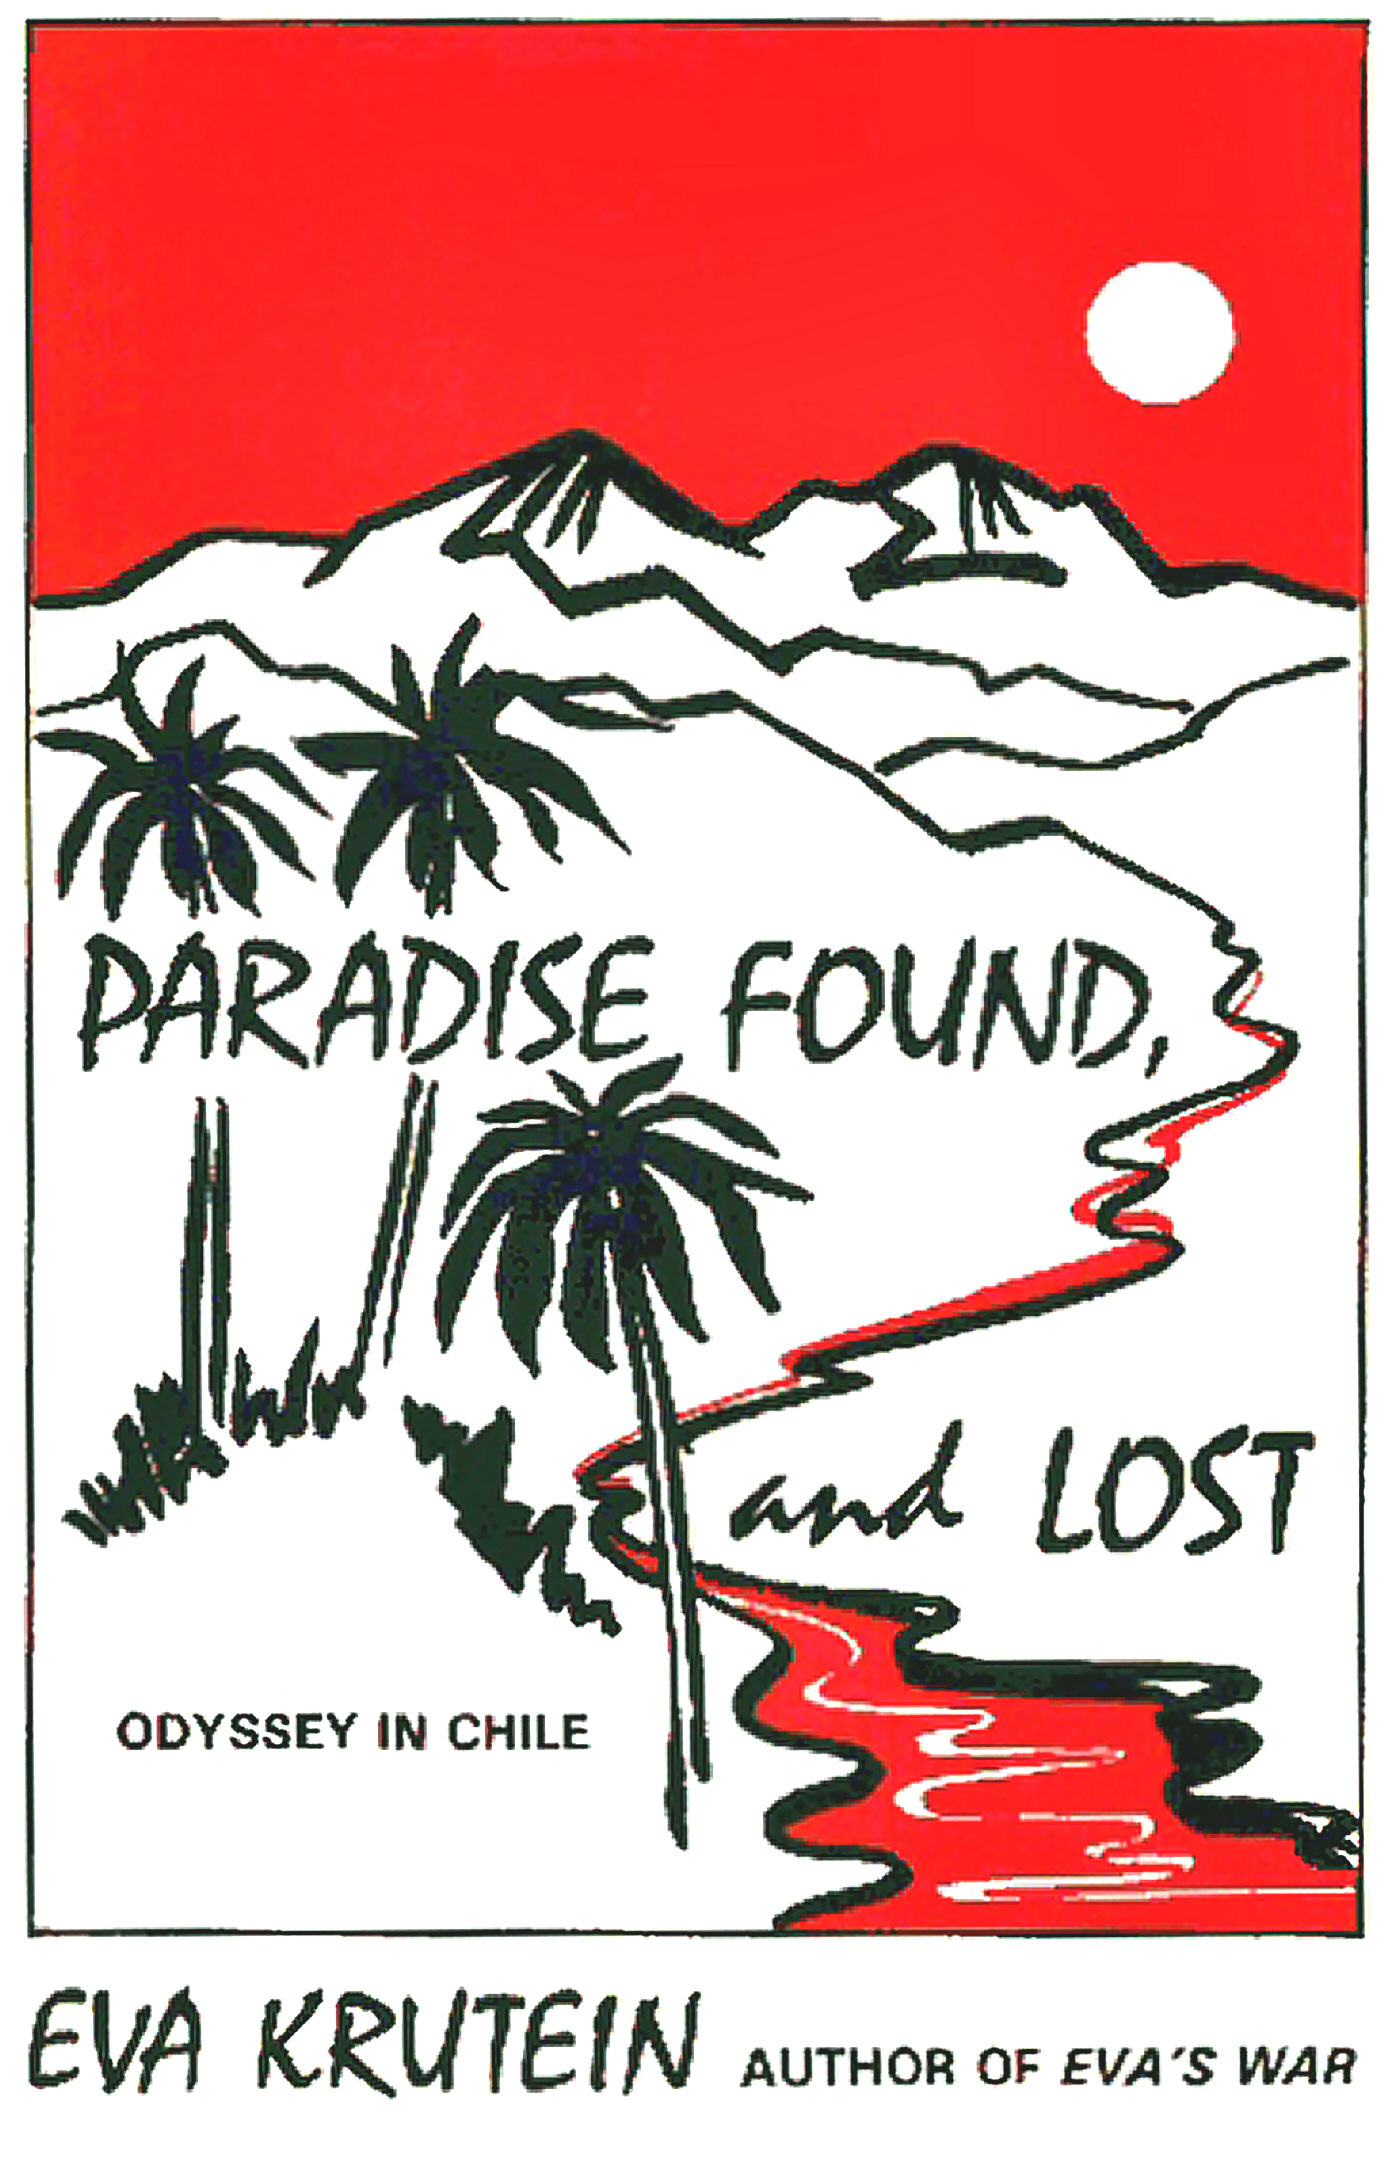 """paradise found and lost daniel j boorstin - paradise lost: an essay upon viewing the documentary, """"paradise lost"""", one of my first impressions was a feeling of shock at the hysteria surrounding the case, and how heavily it impacted the trial."""